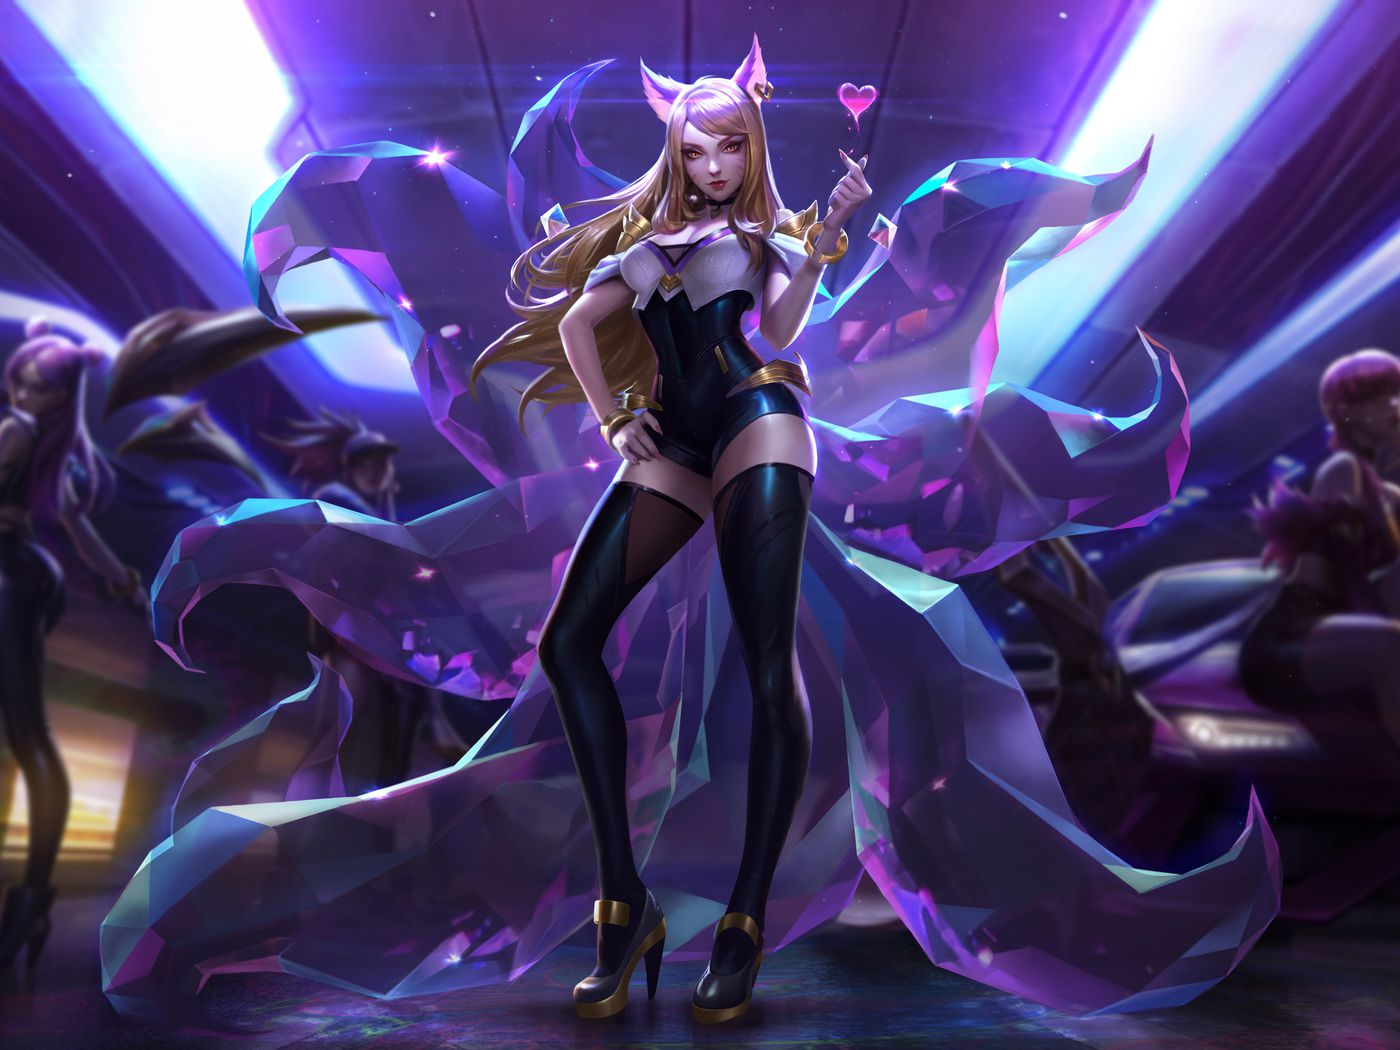 League Of Legends Virtual K Pop Band Is Helping The Game Attract A Whole New Audience The Verge